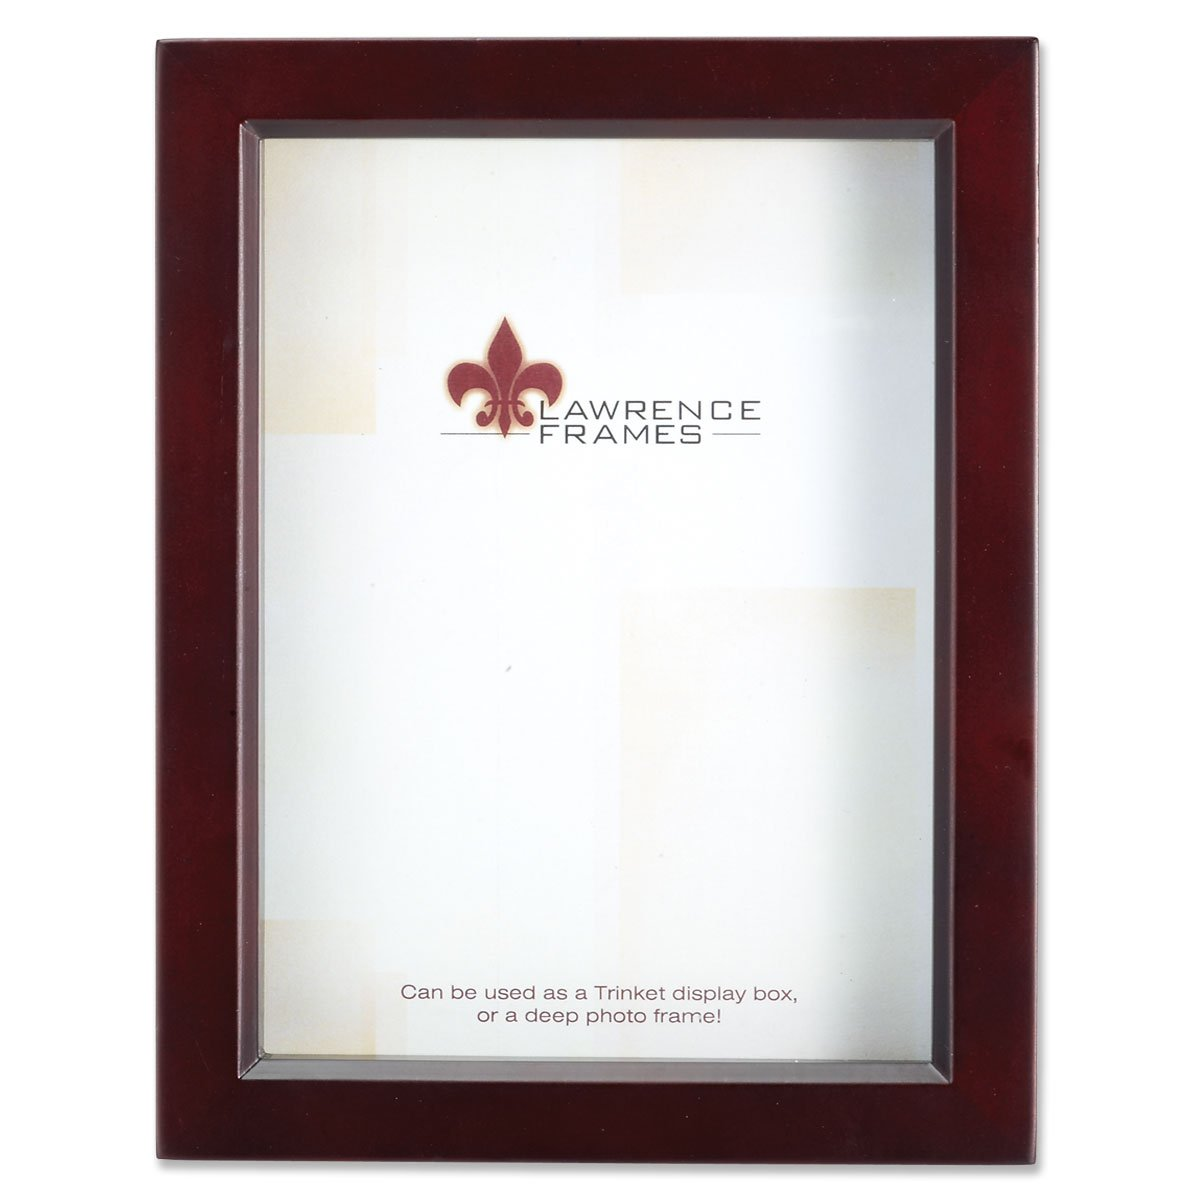 Lawrence Frames Espresso Wood Treasure Box Shadow Box Picture Frame, 8 by 10-Inch 795180